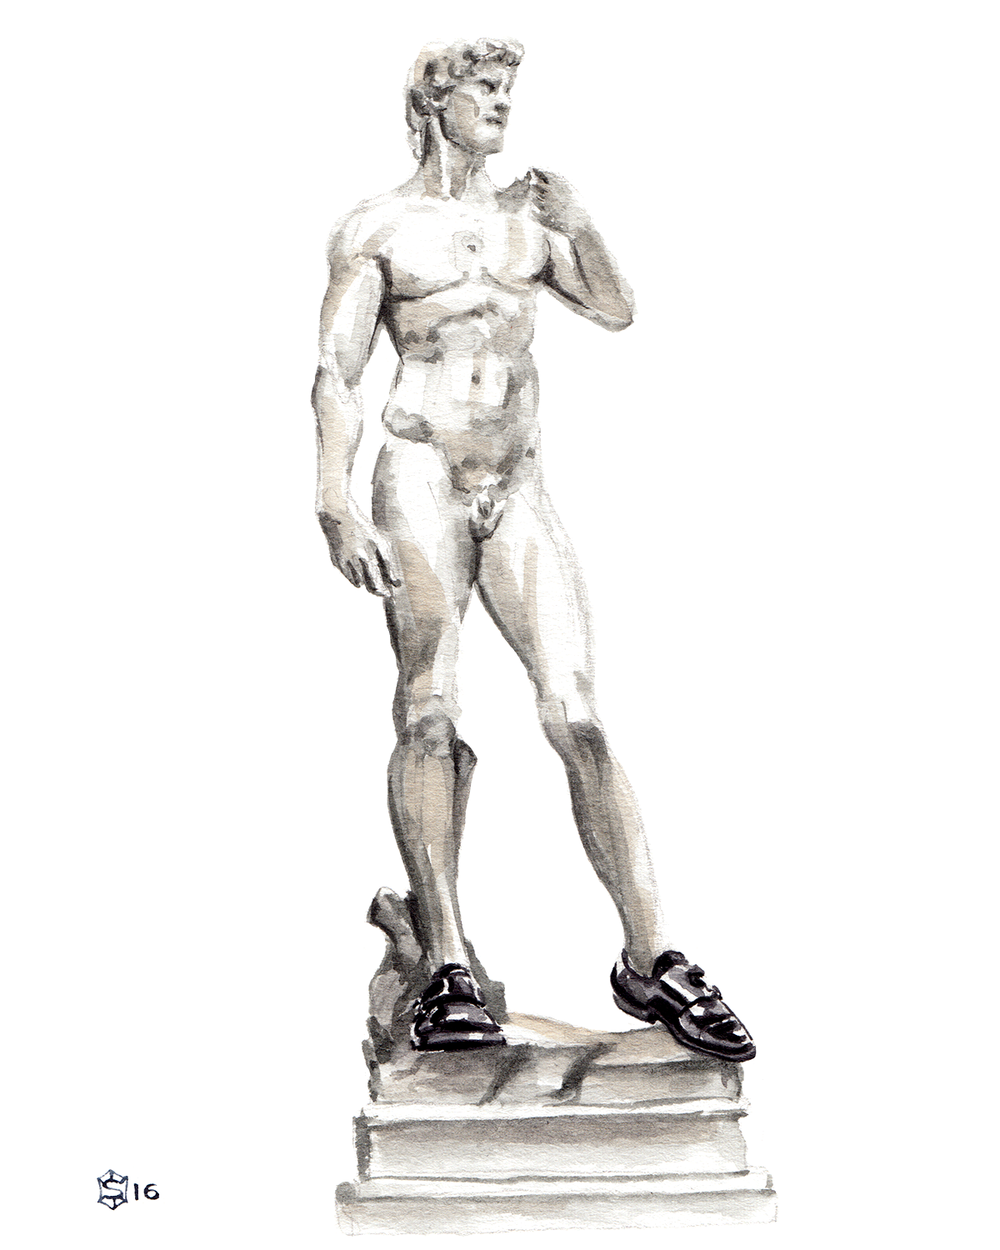 Menswear Illustration Michelango's The David wearing Express double monk shoes